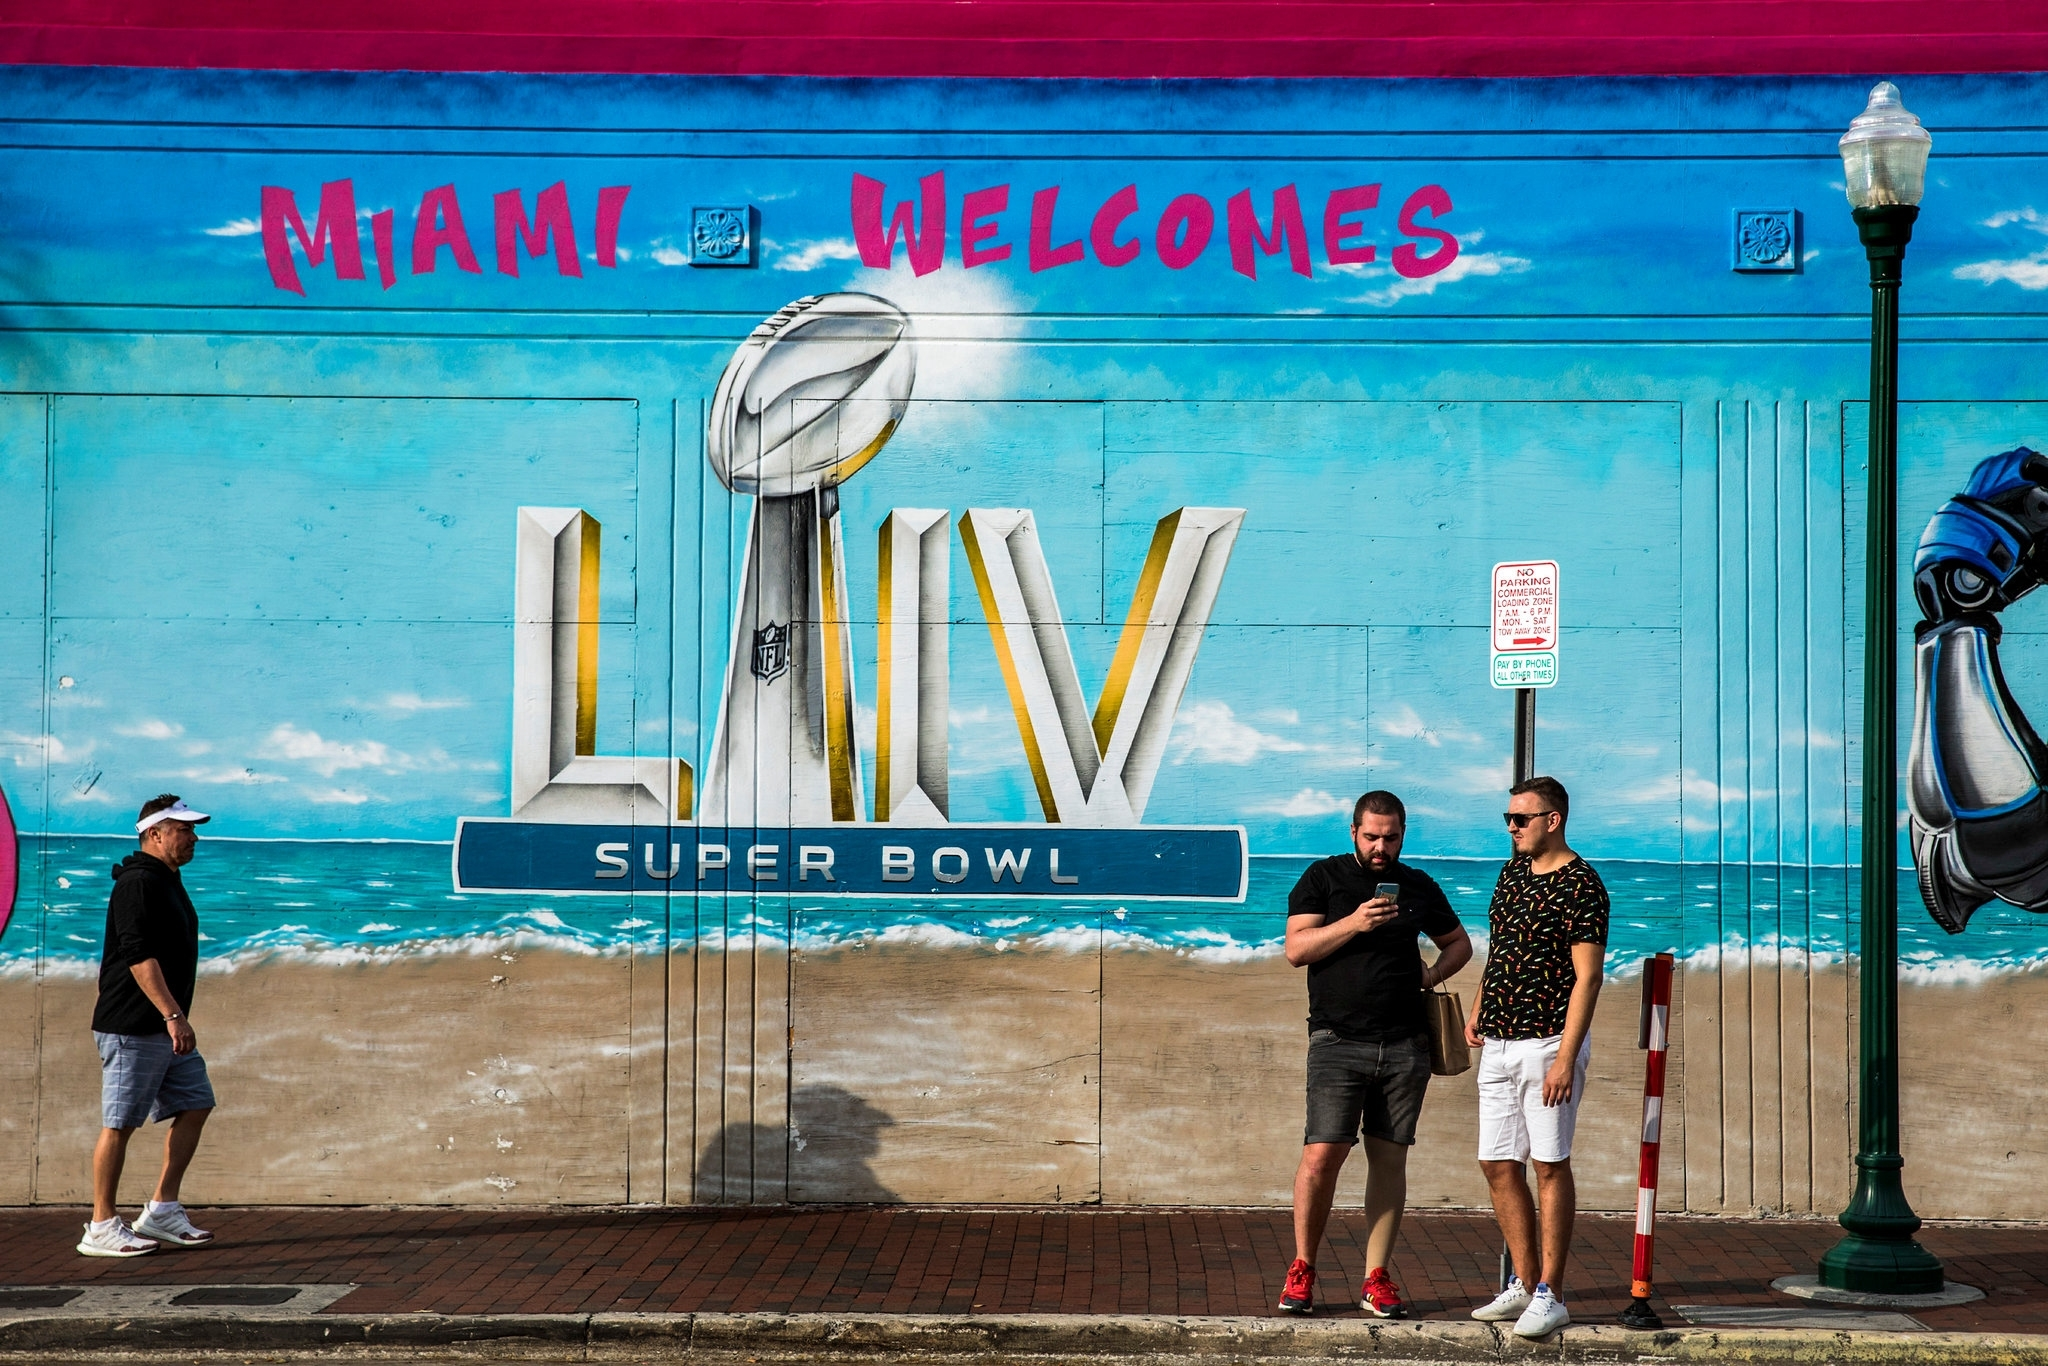 A Super Bowl With A Latino Flair In Miami - The New York Times within Super Bowl Miami Years